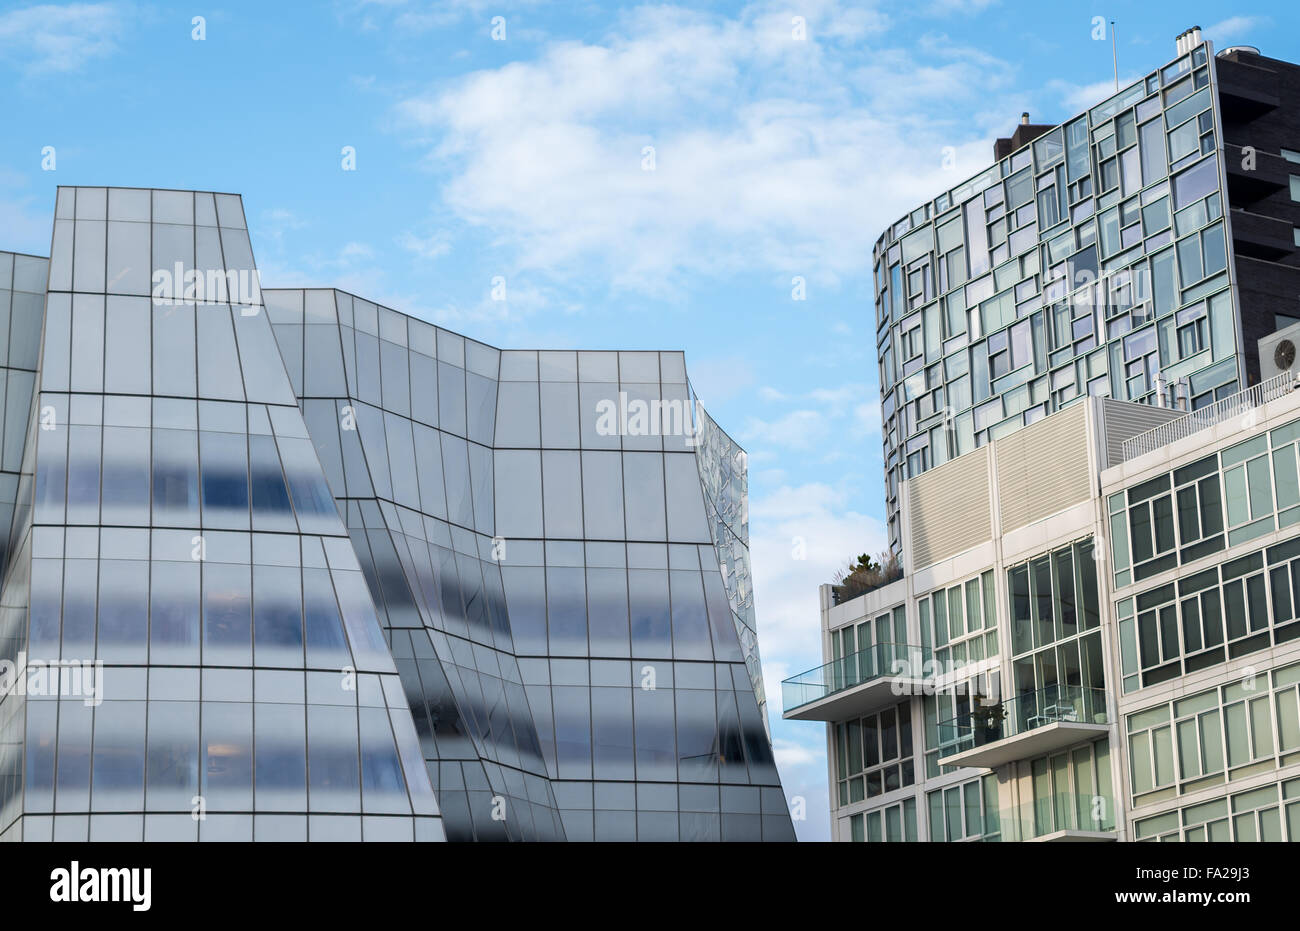 The IAC HQ, Chelsea Nouvel, Metal Shutter Houses and 520 West Chelsea on a bright sunny day in NYC. - Stock Image